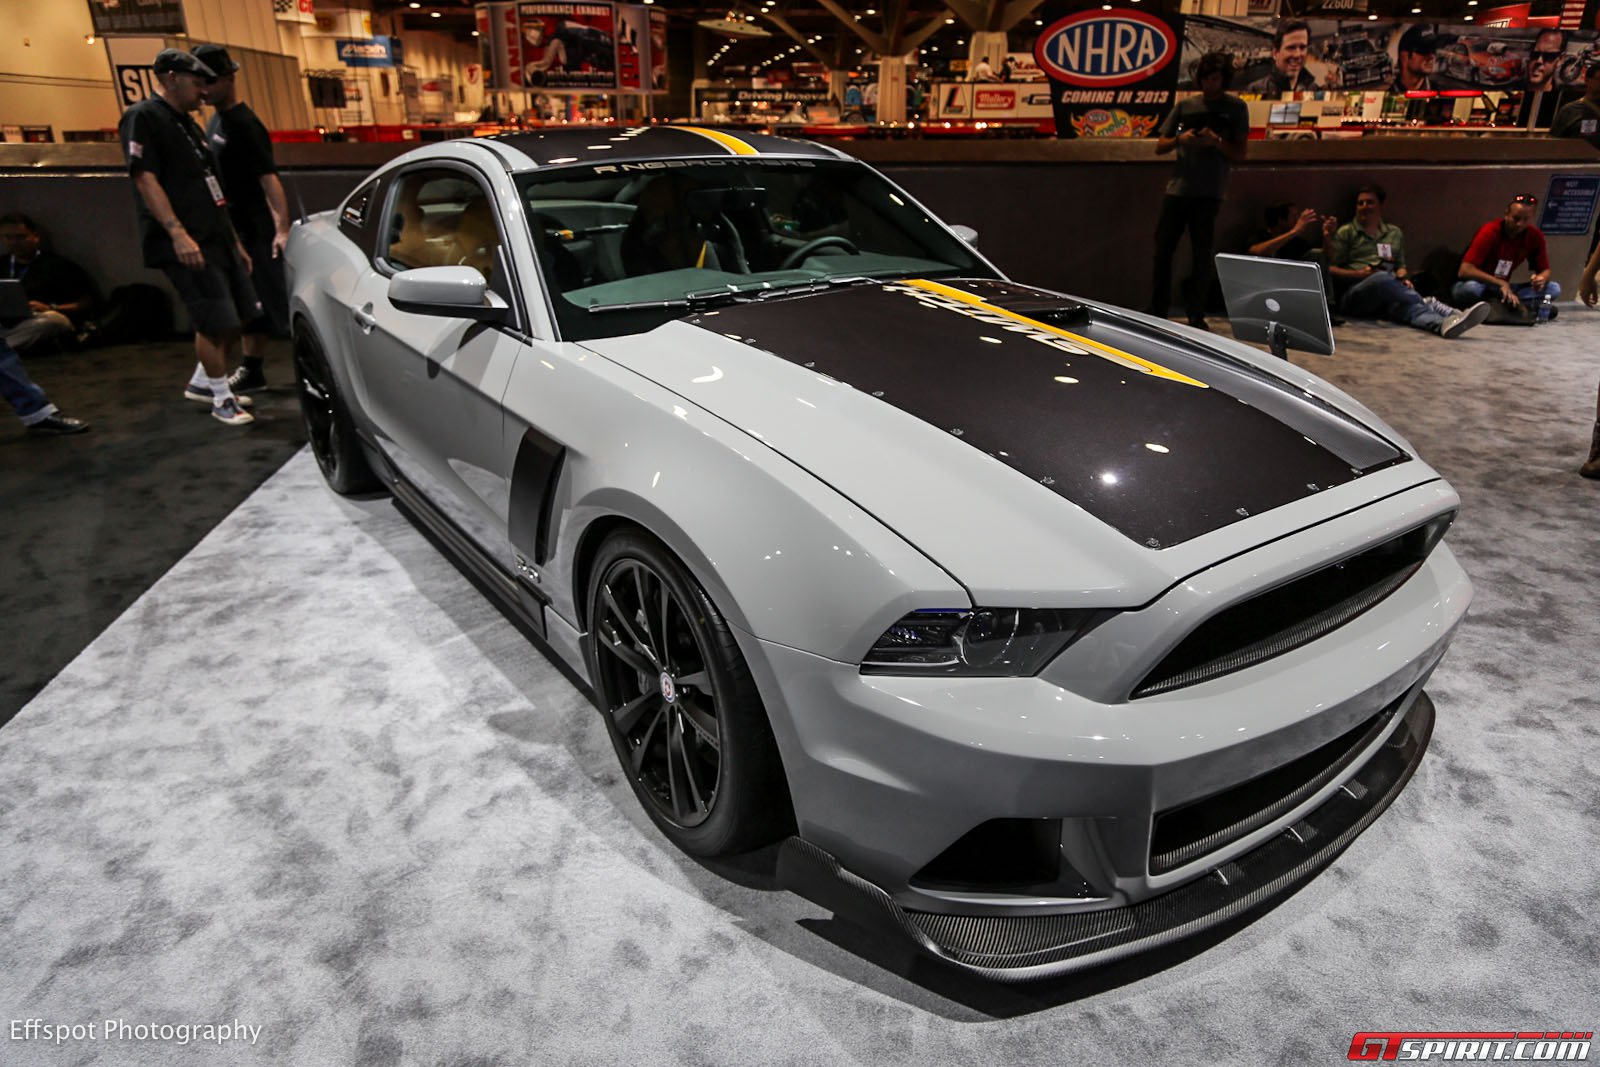 http://www.gtspirit.com/wp-content/gallery/sema-2012-ford-mustang-gt-ringbrothers-edition/p54a5511.jpg